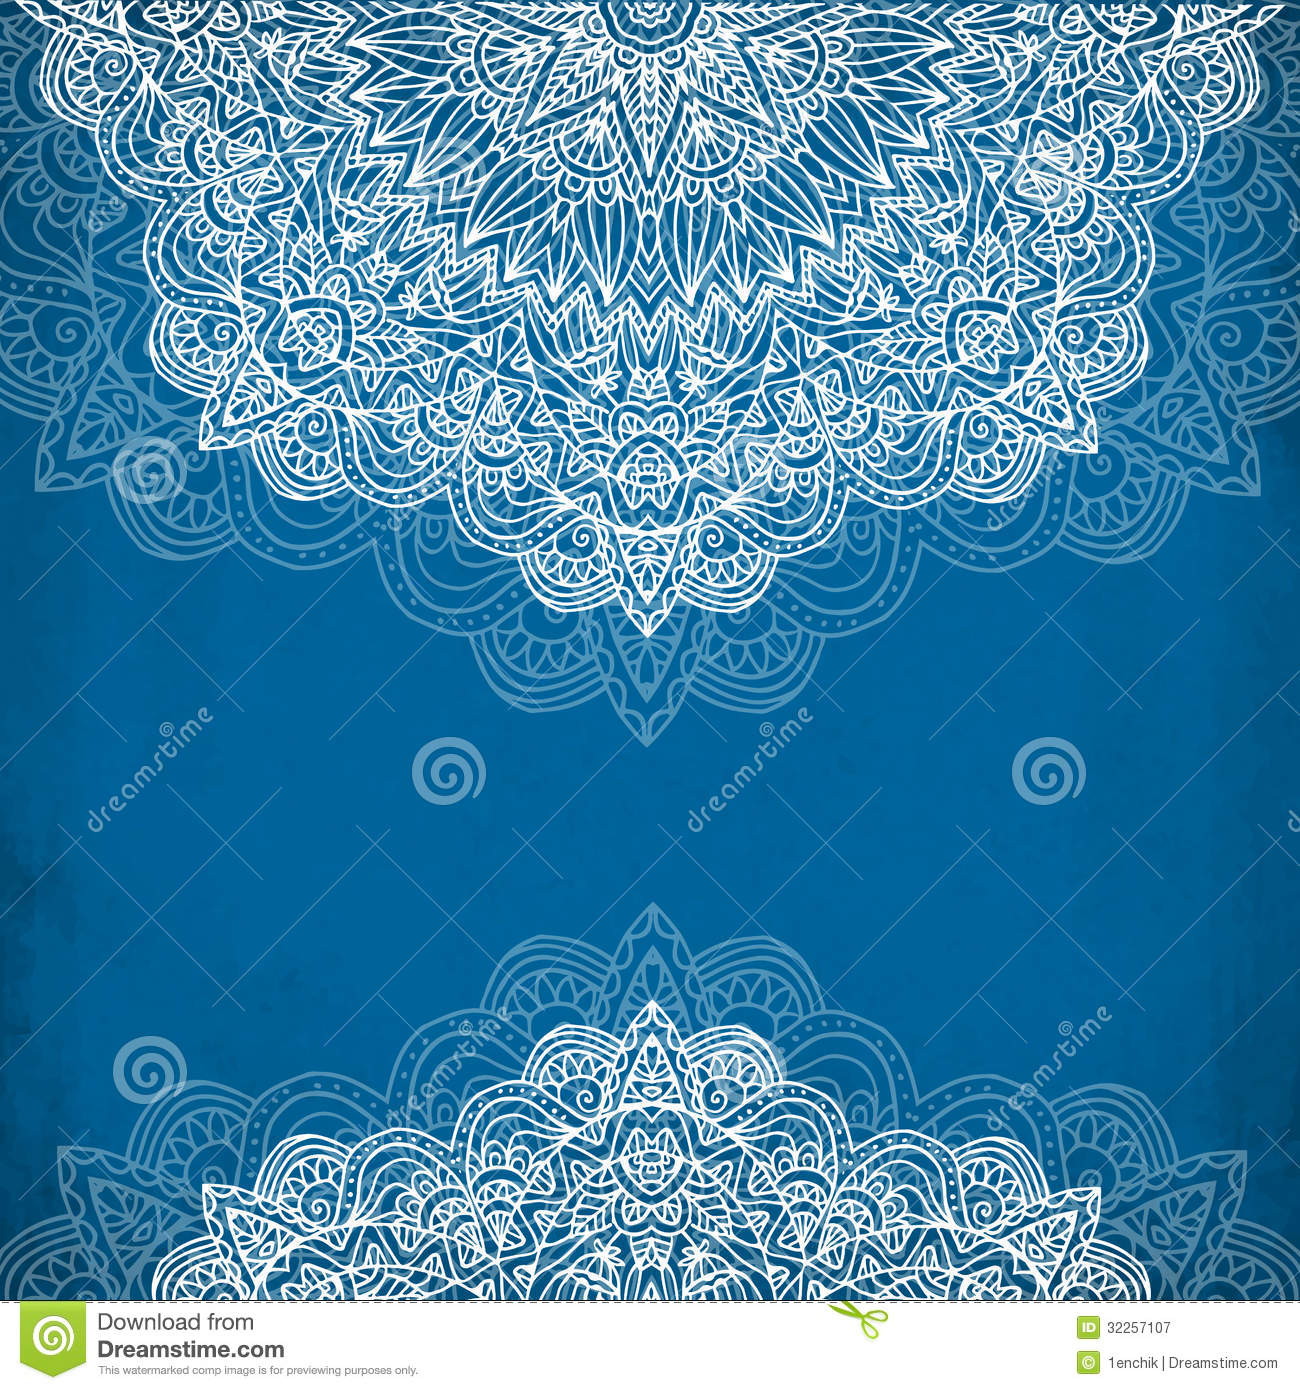 Ornate vintage vector background in mehndi style royalty free stock - Royalty Free Stock Photo Download Ornate Vintage Blue Vector Background